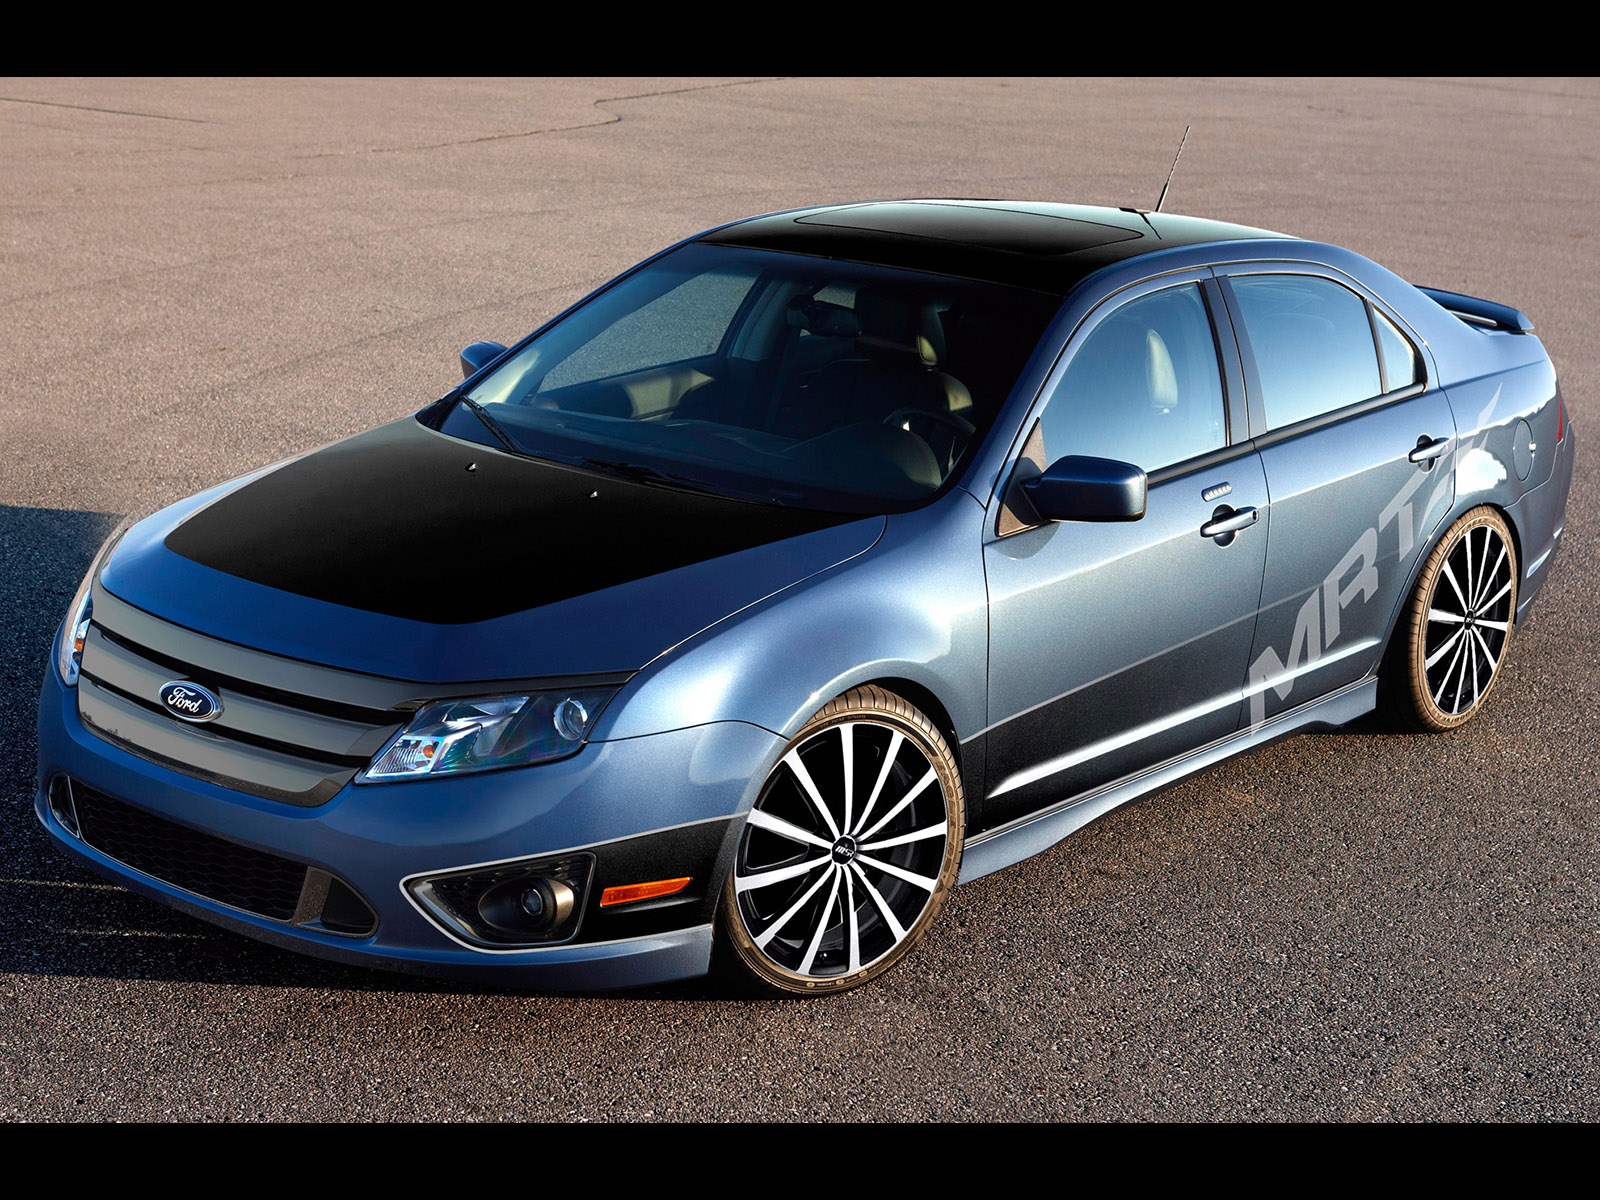 ford fusion usa images #11